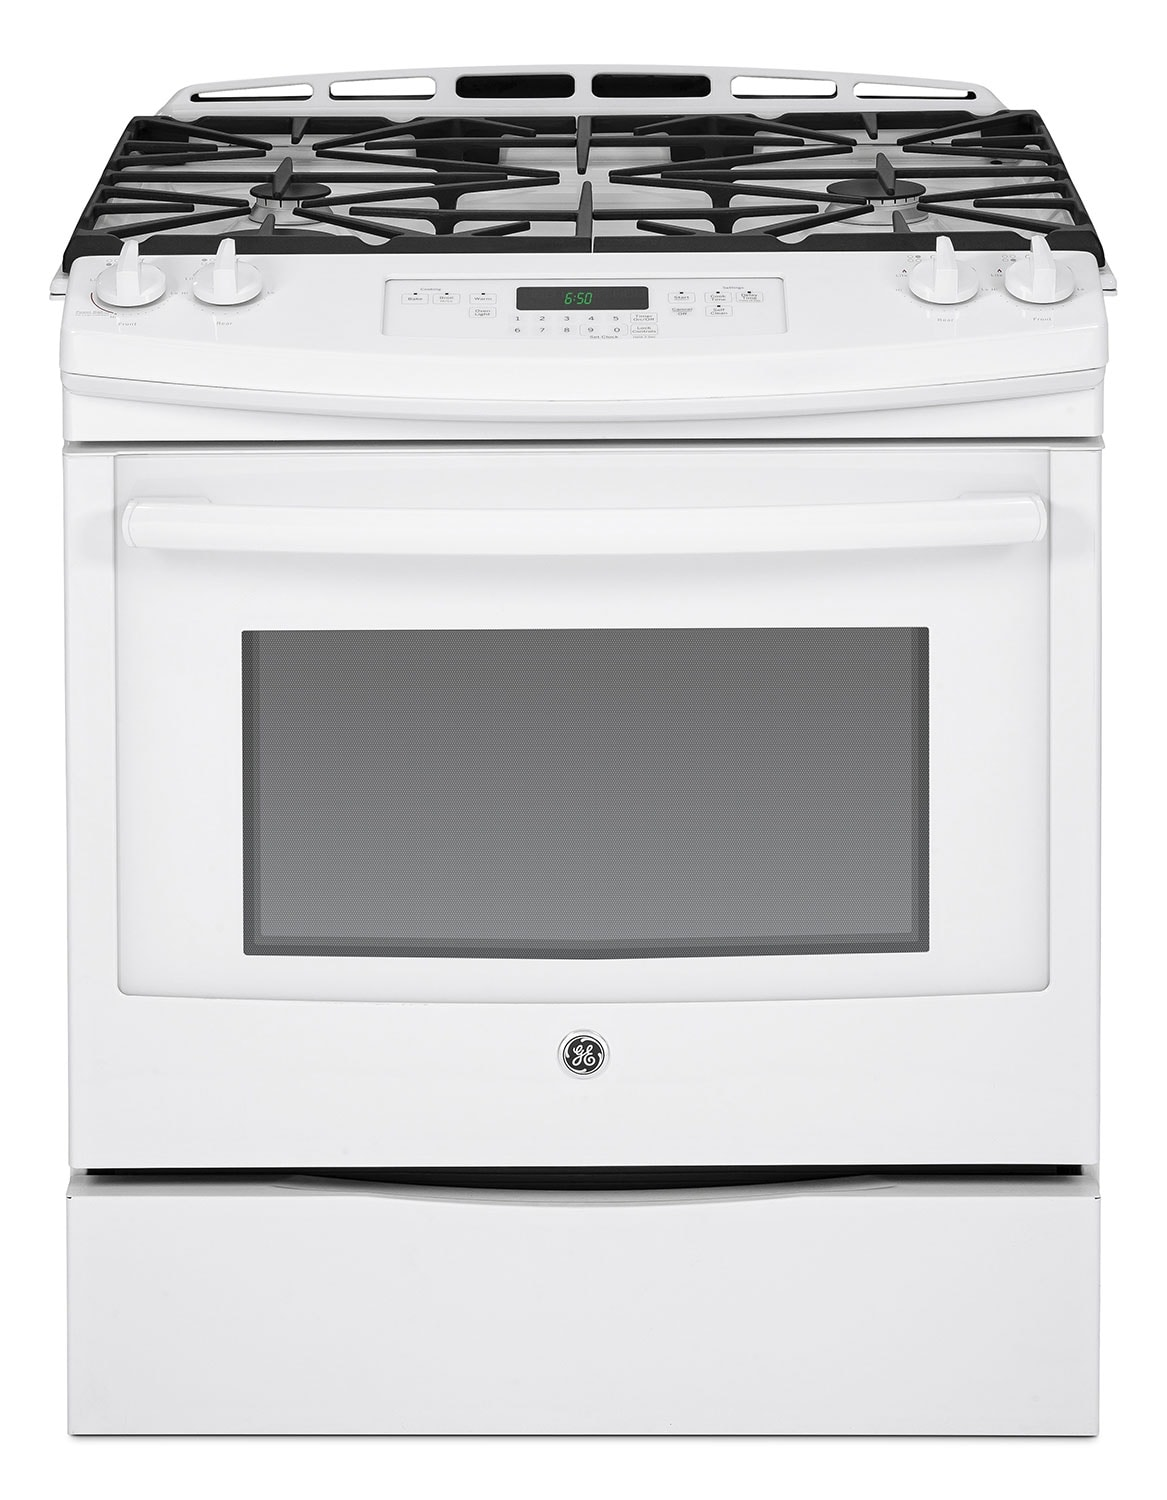 GE 5.6 Cu. Ft. Slide-In Gas Range - White